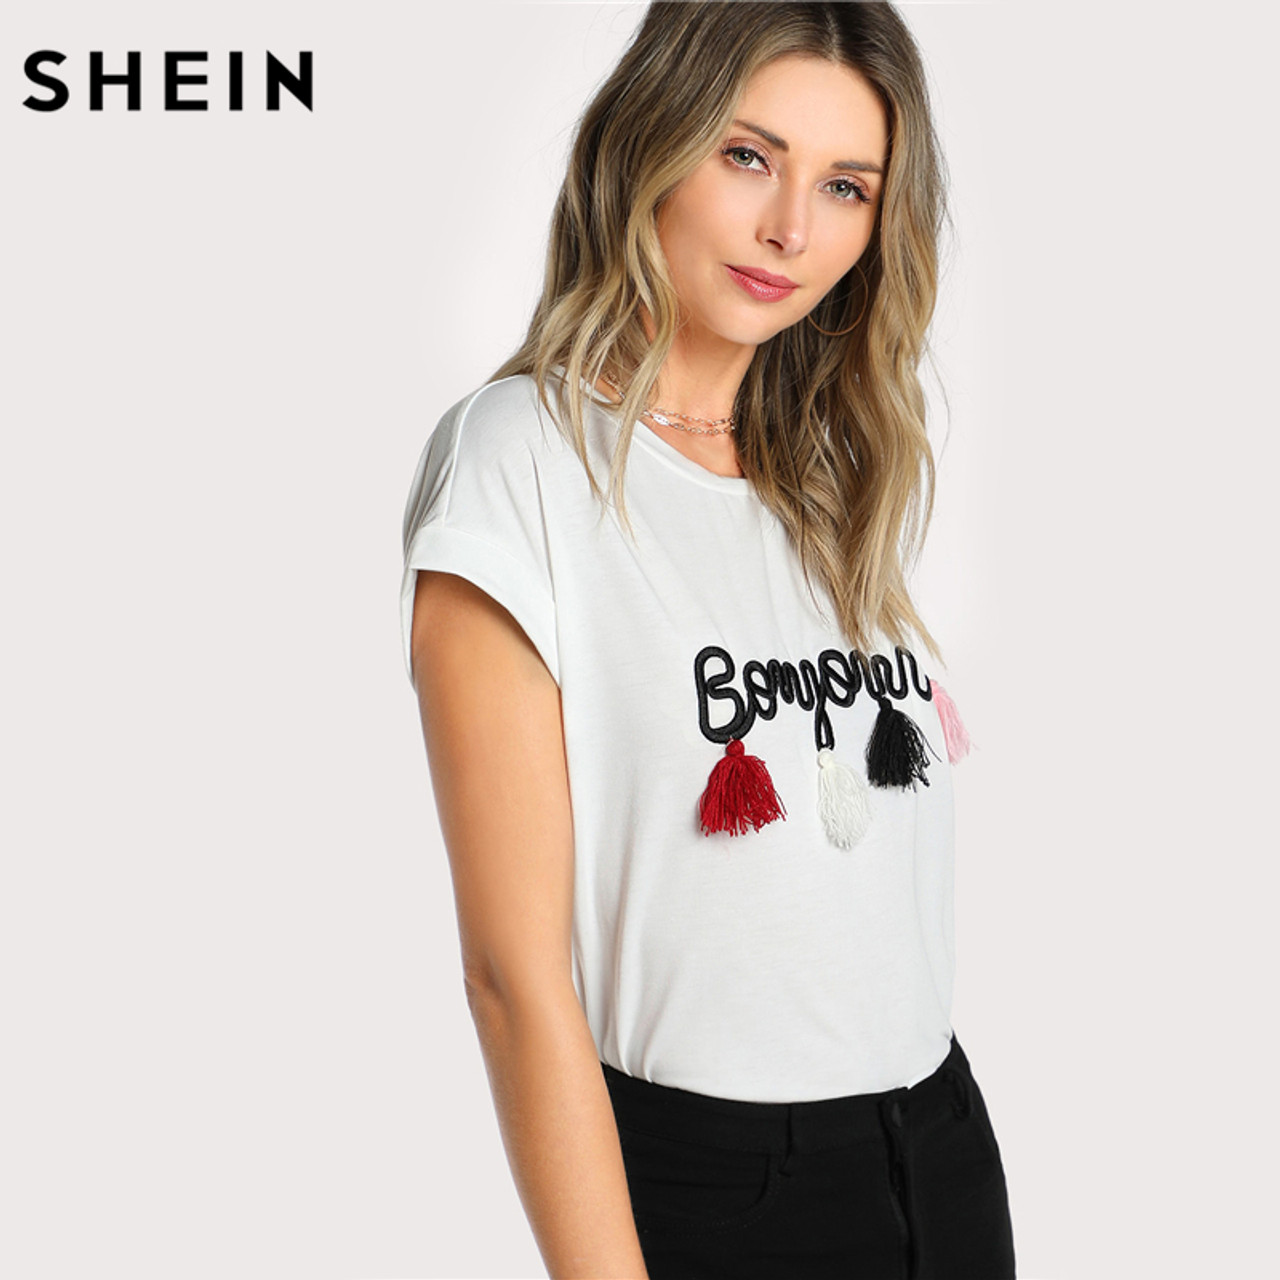 43f4b6b749 ... SHEIN T shirt Women Tops Summer O-neck T shirt Batwing Sleeve Tassel  Detail Embroidery ...